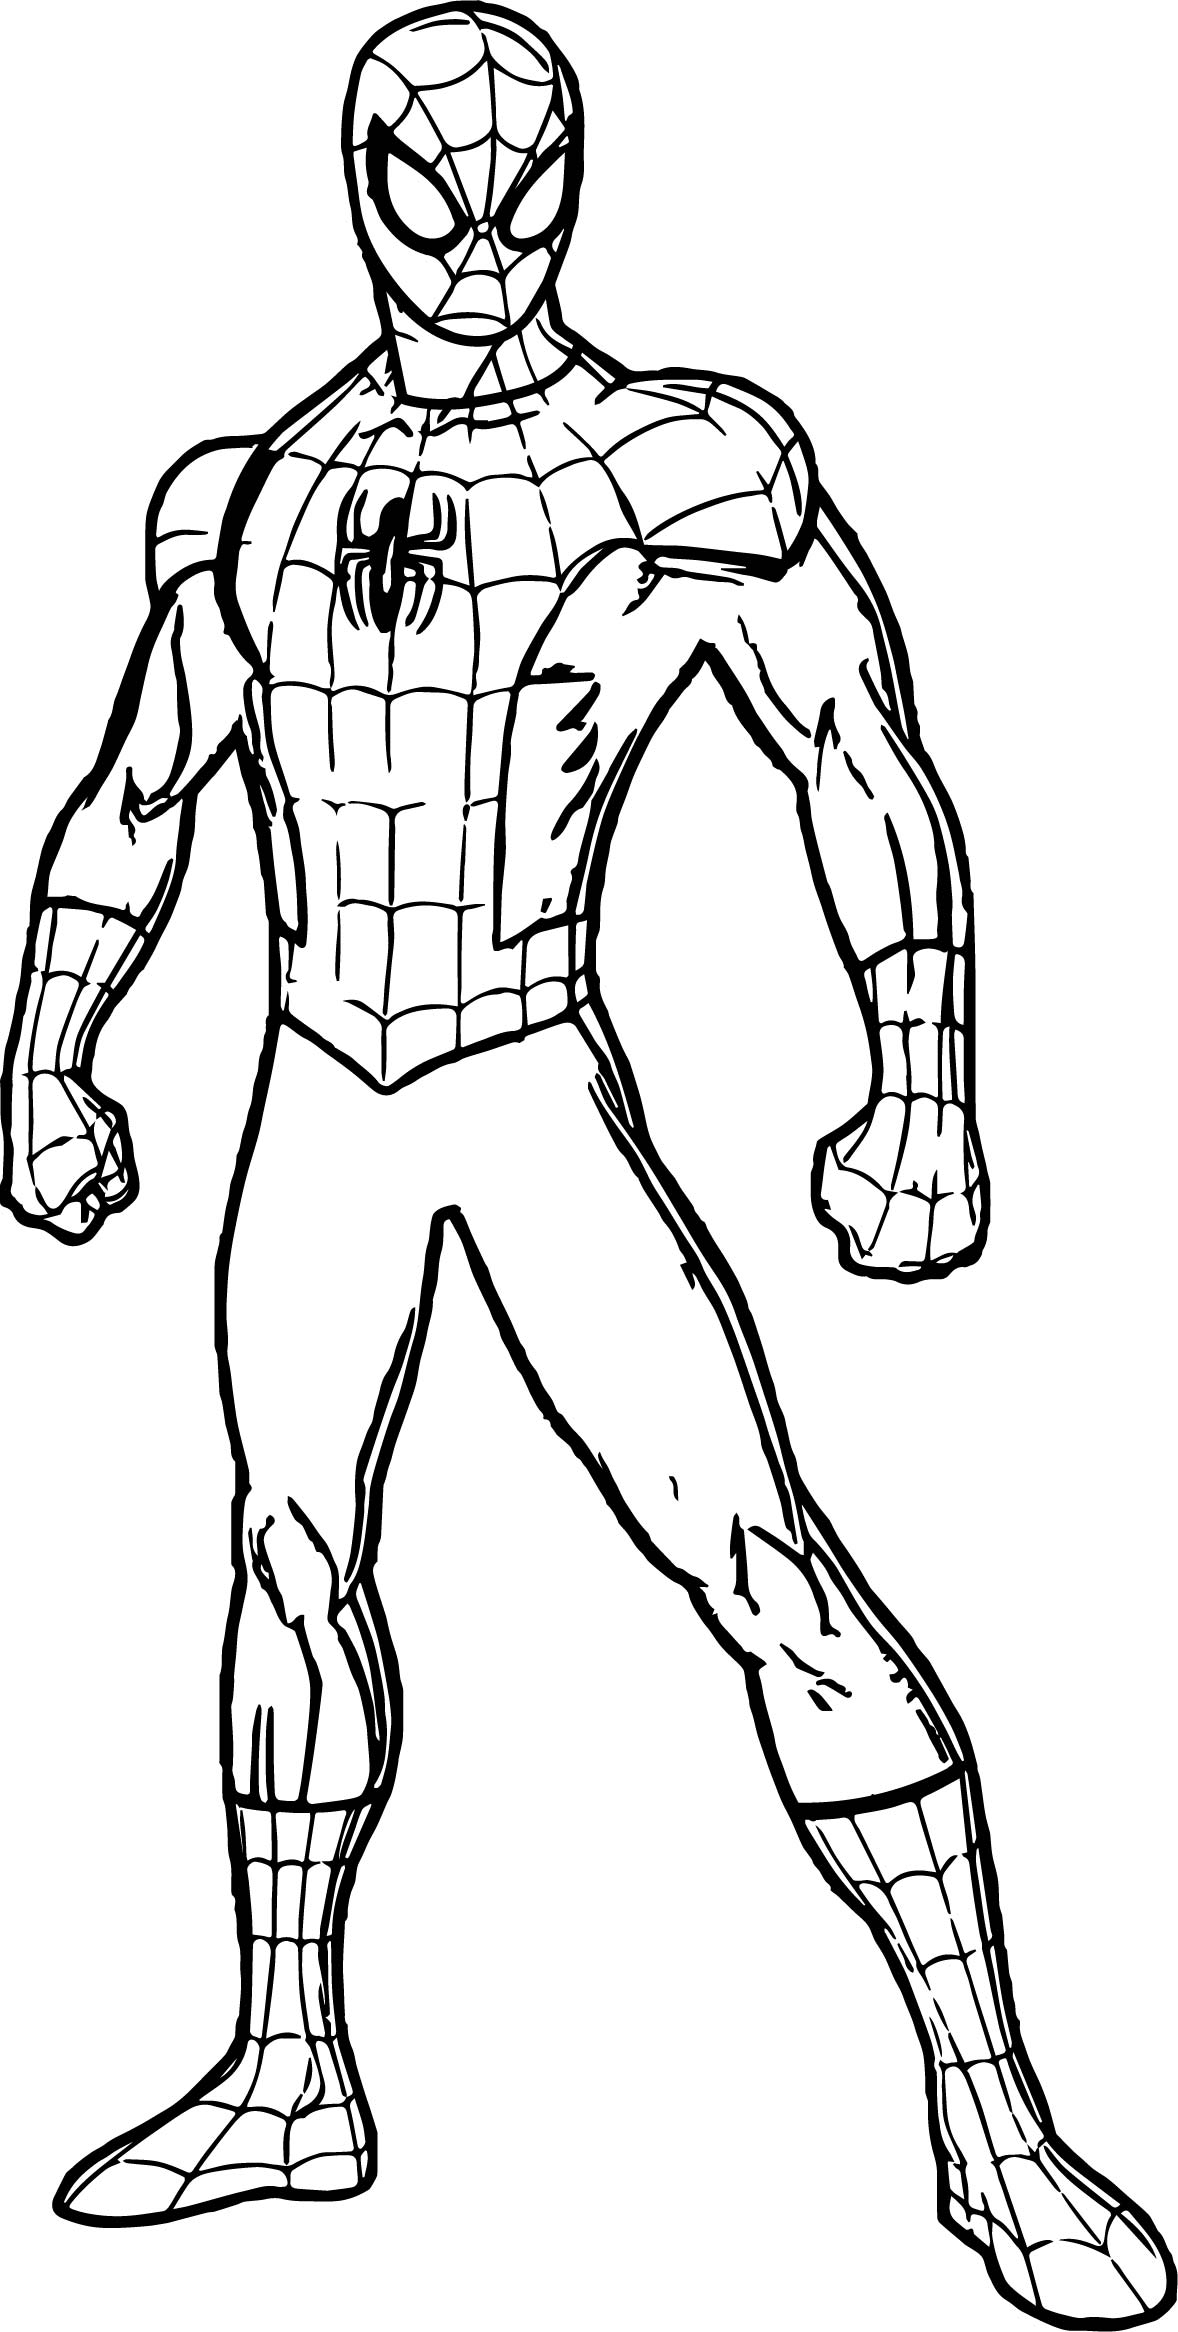 Spidey spider man coloring page for Spiderman coloring page printable